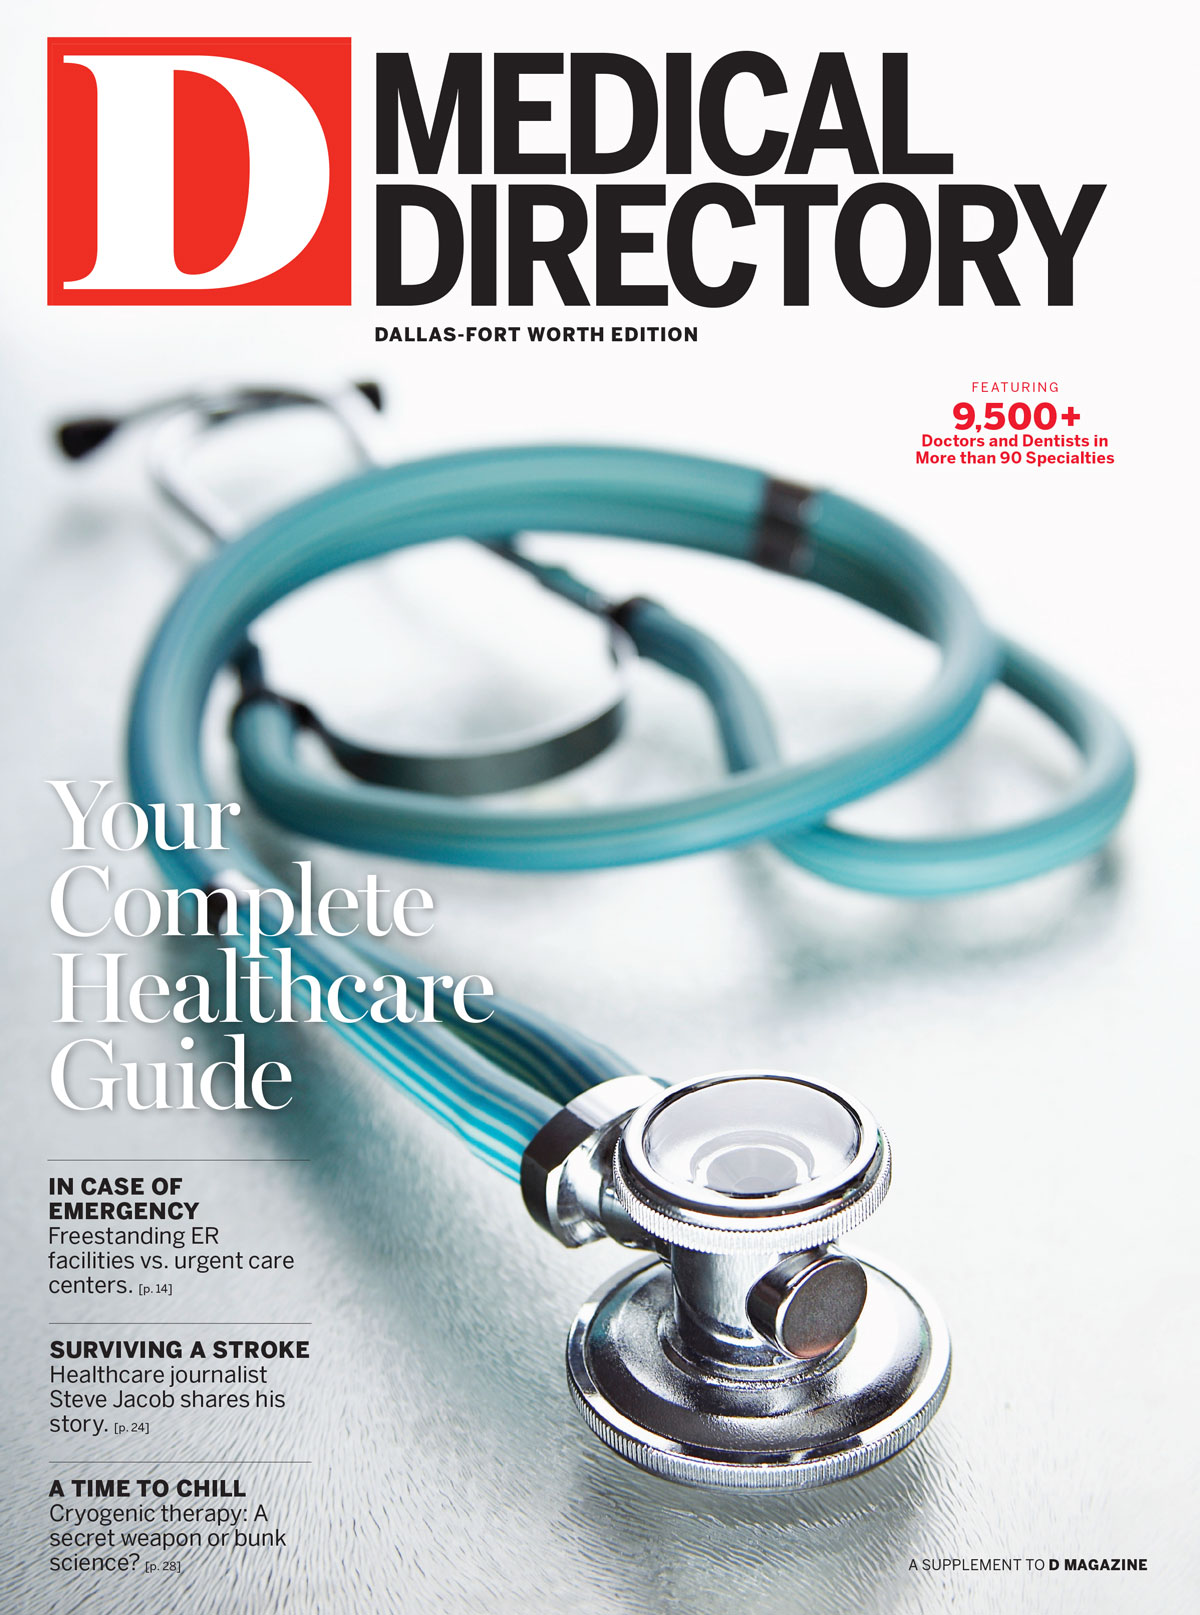 Dallas Medical Directory 2014 cover